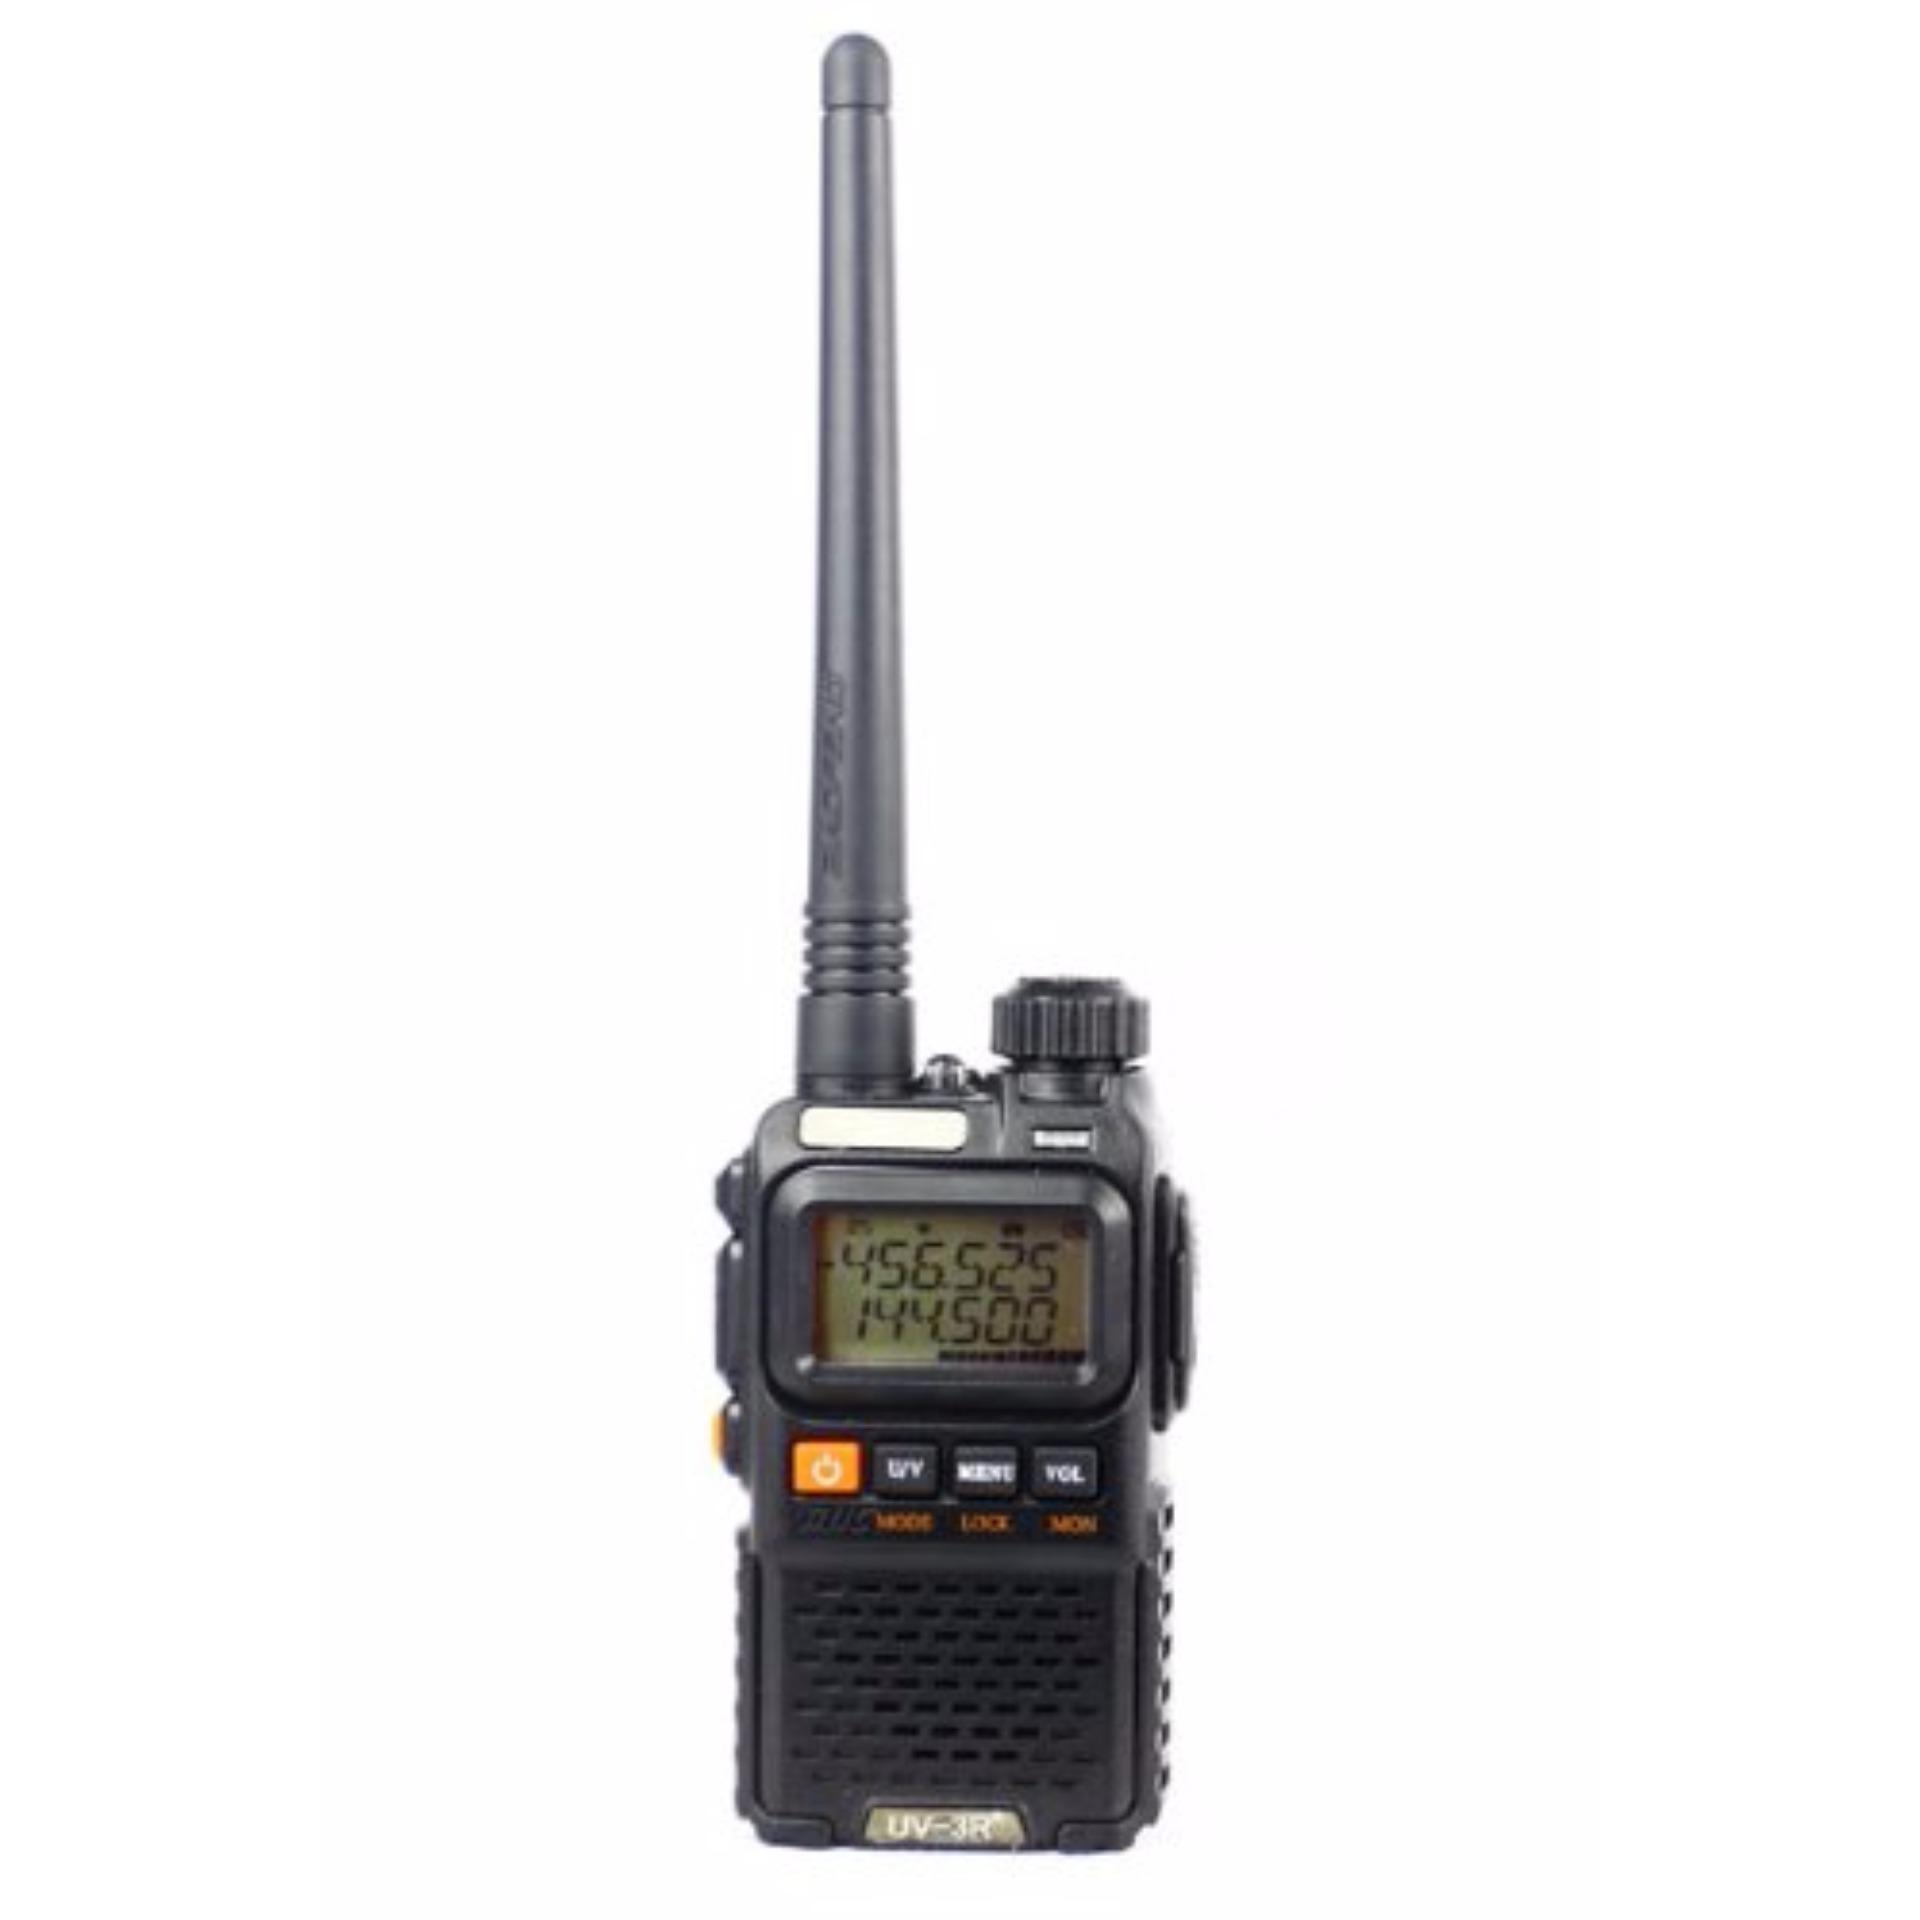 Beli Radio Walkie Handy Talky Ht Baofeng Pofung Dual Band Uhf Vhf Uv 3R Plus Nyicil